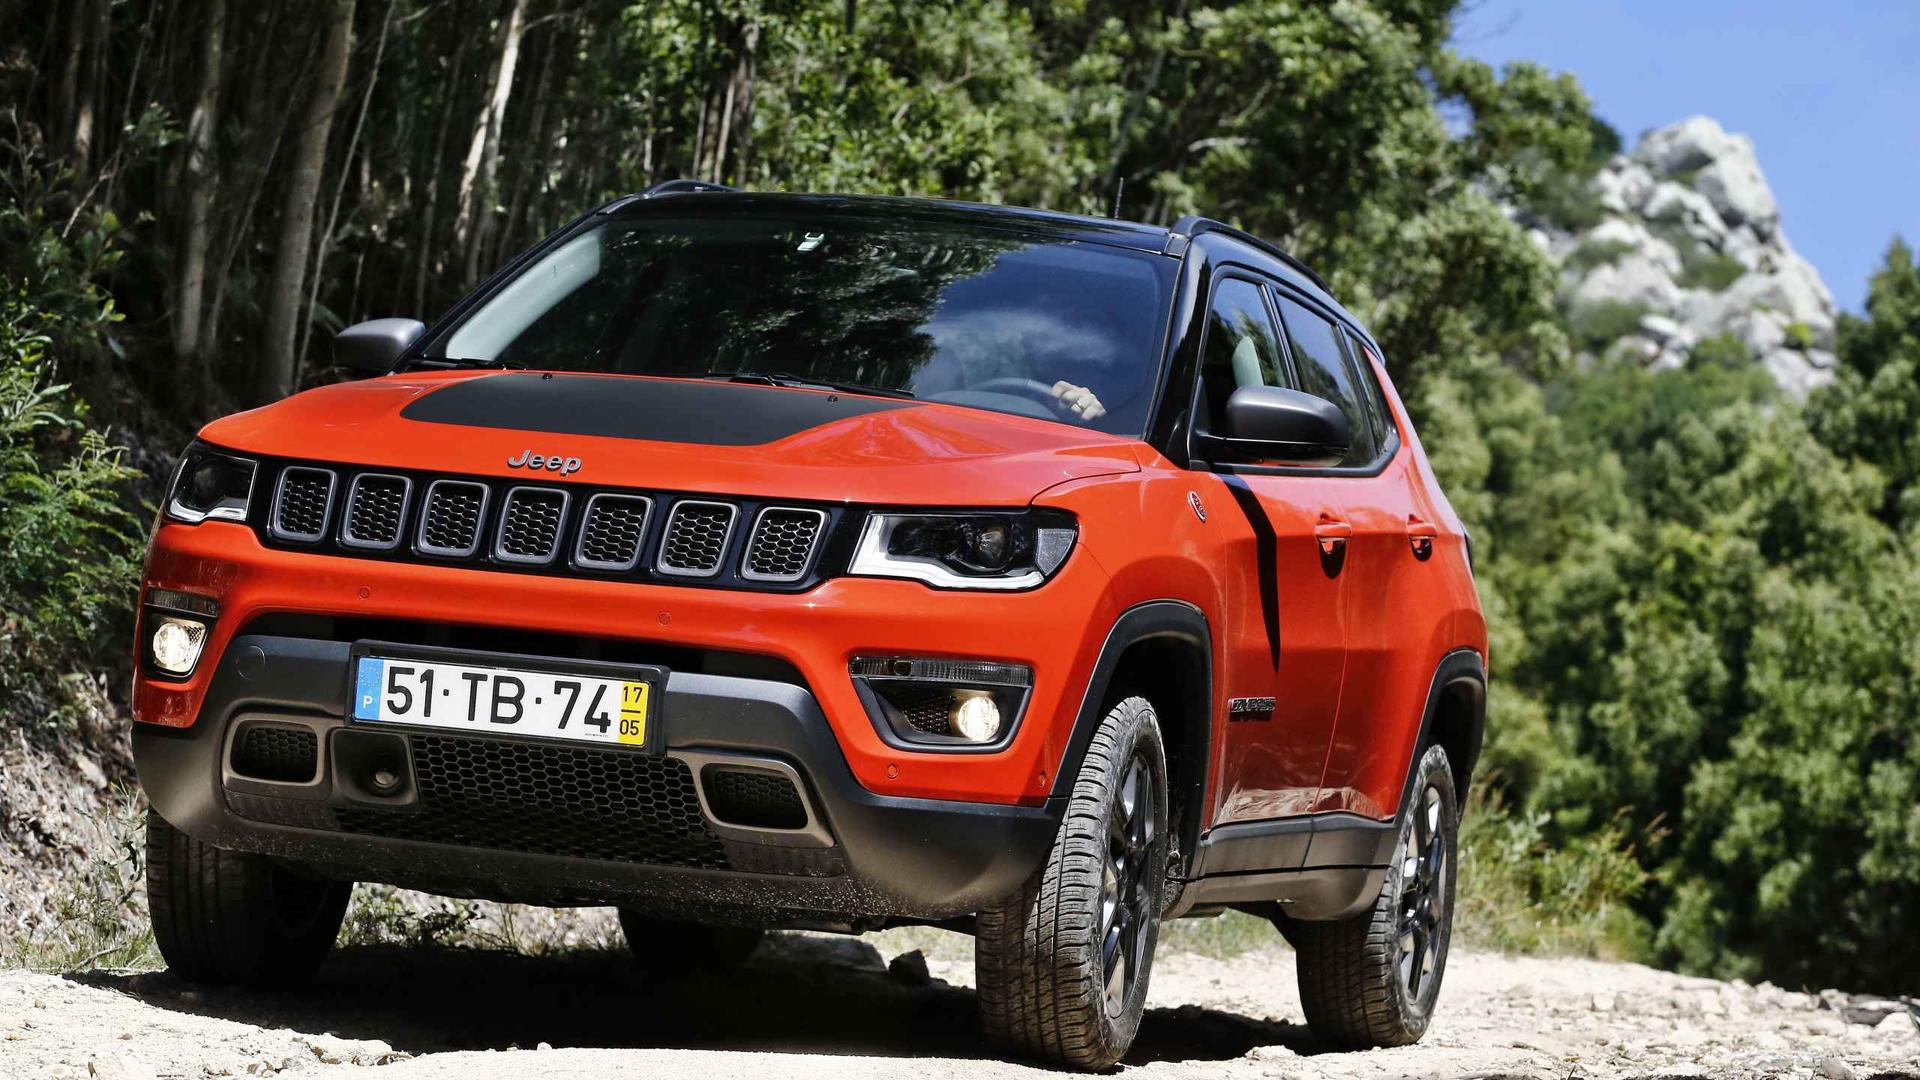 2018 jeep compass review stylish look brings appeal. Black Bedroom Furniture Sets. Home Design Ideas